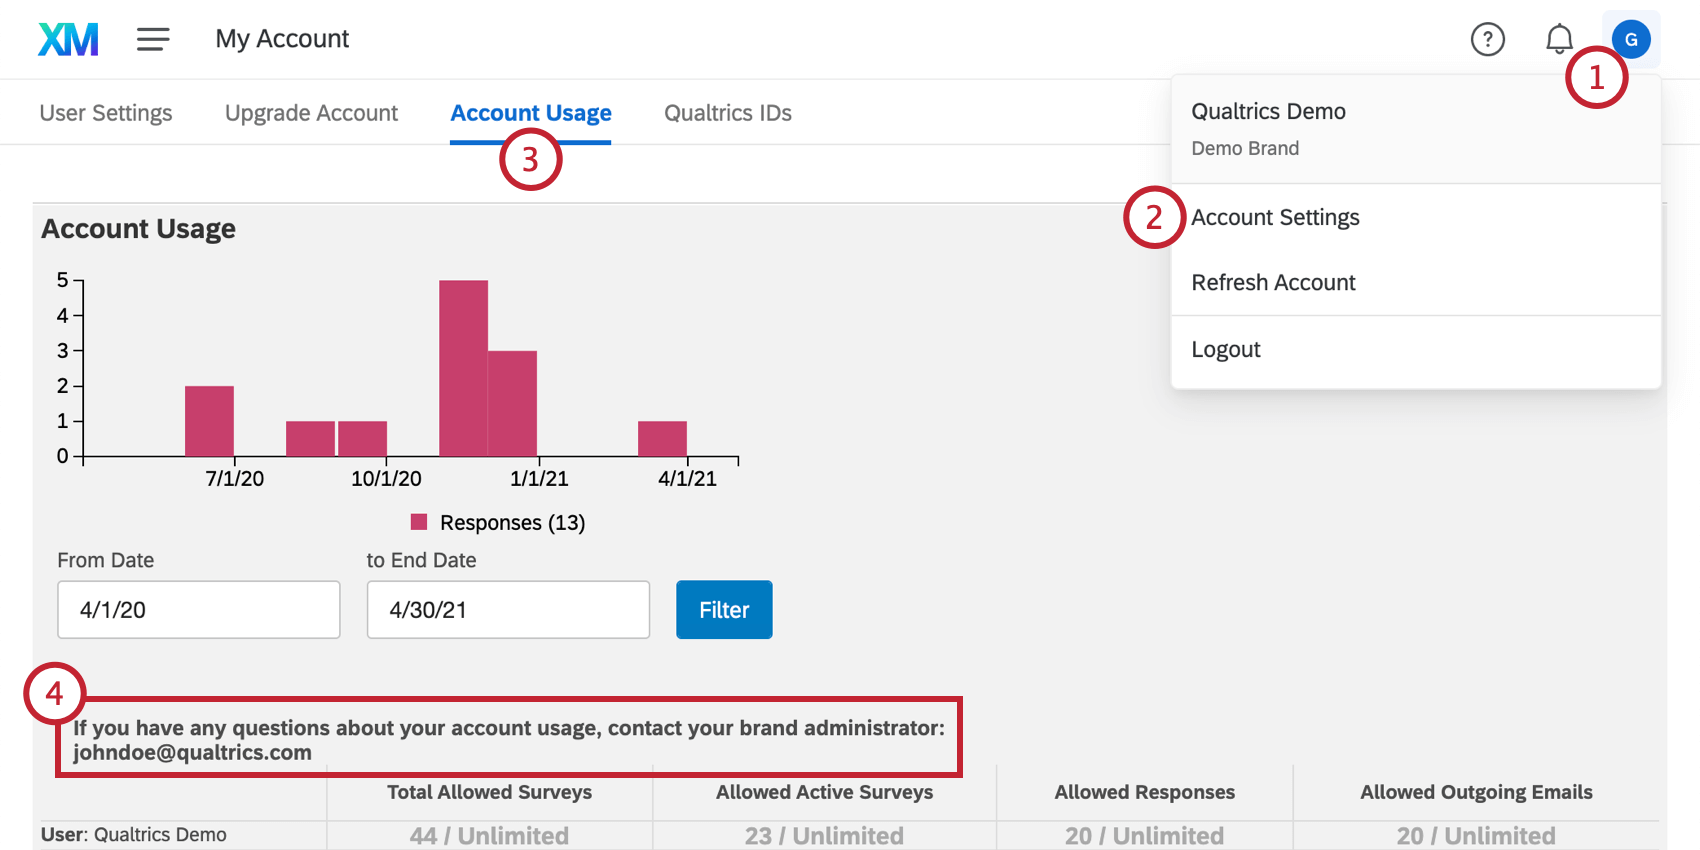 Navigating to the brand administrator contact information in the Account Usage section of the Account Settings